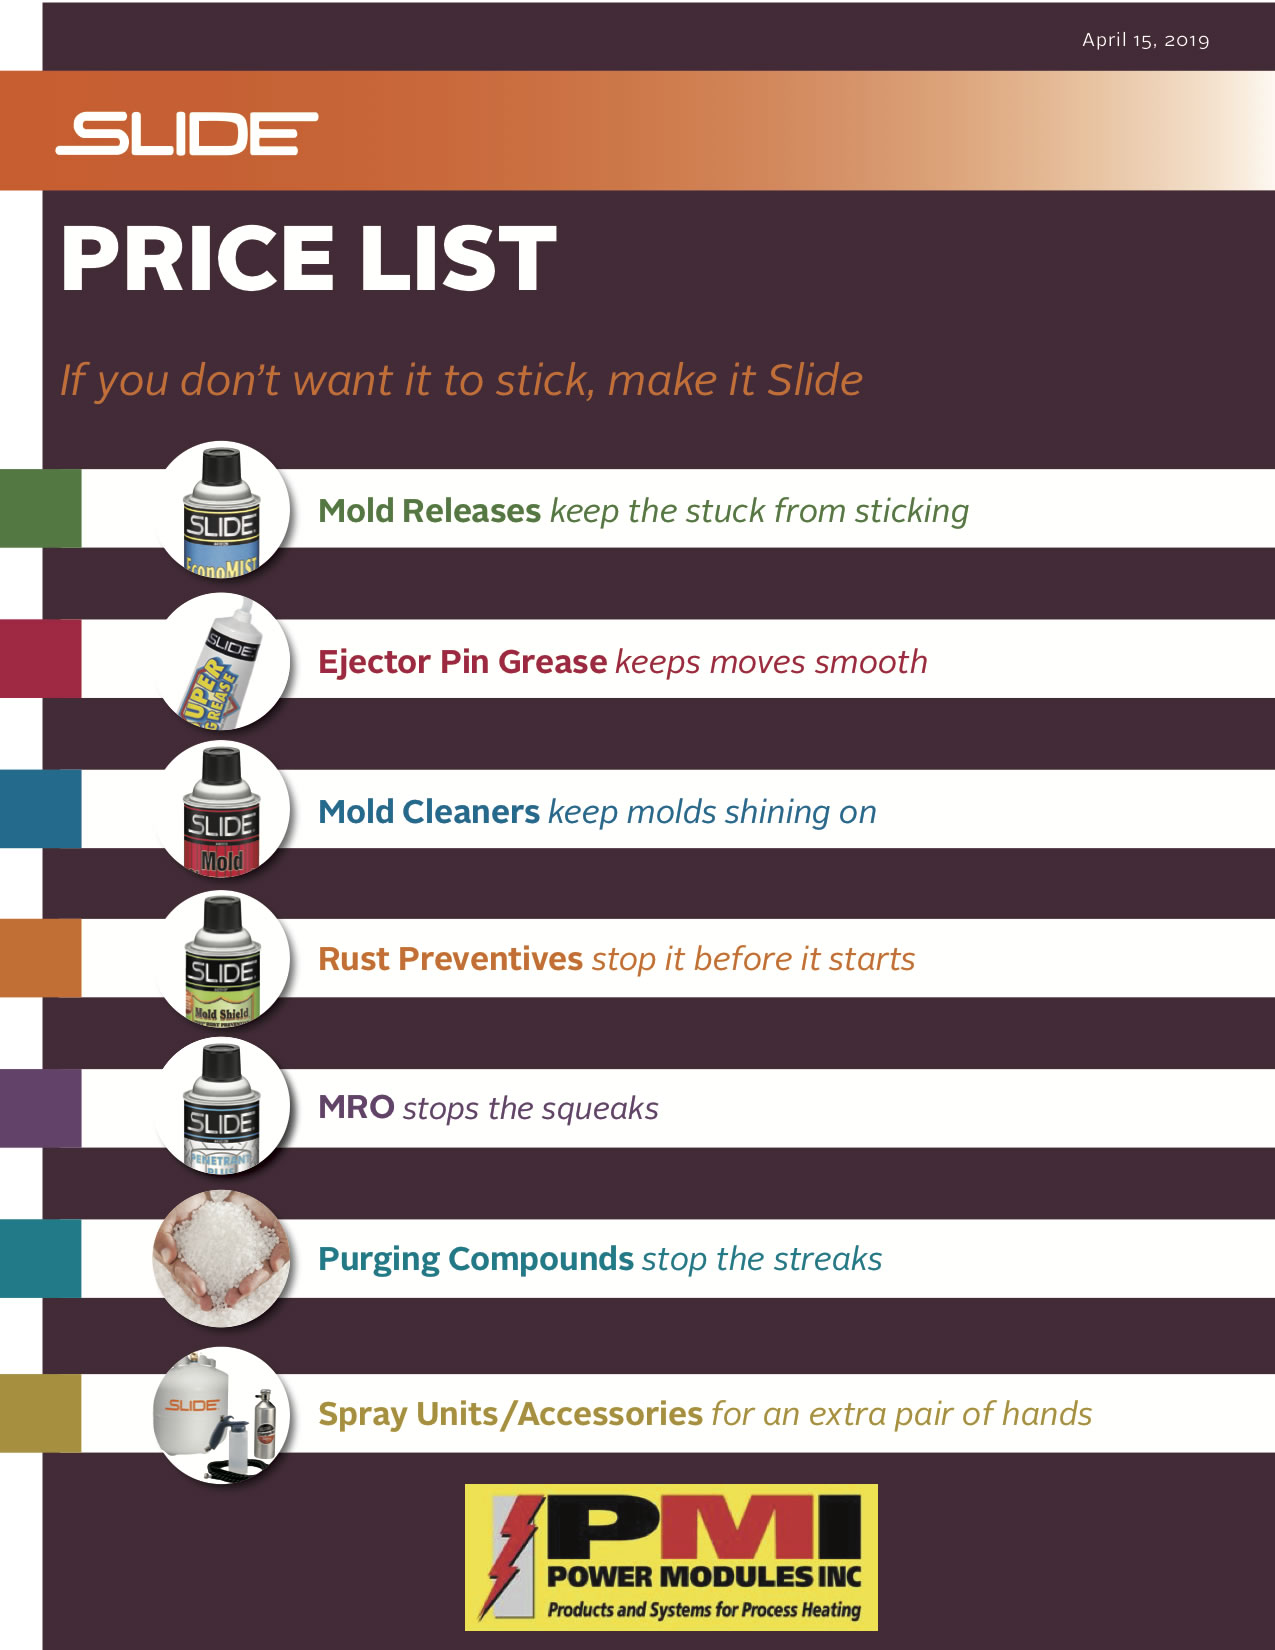 Slide User Price List with PMI Contact Info 4-15-2019